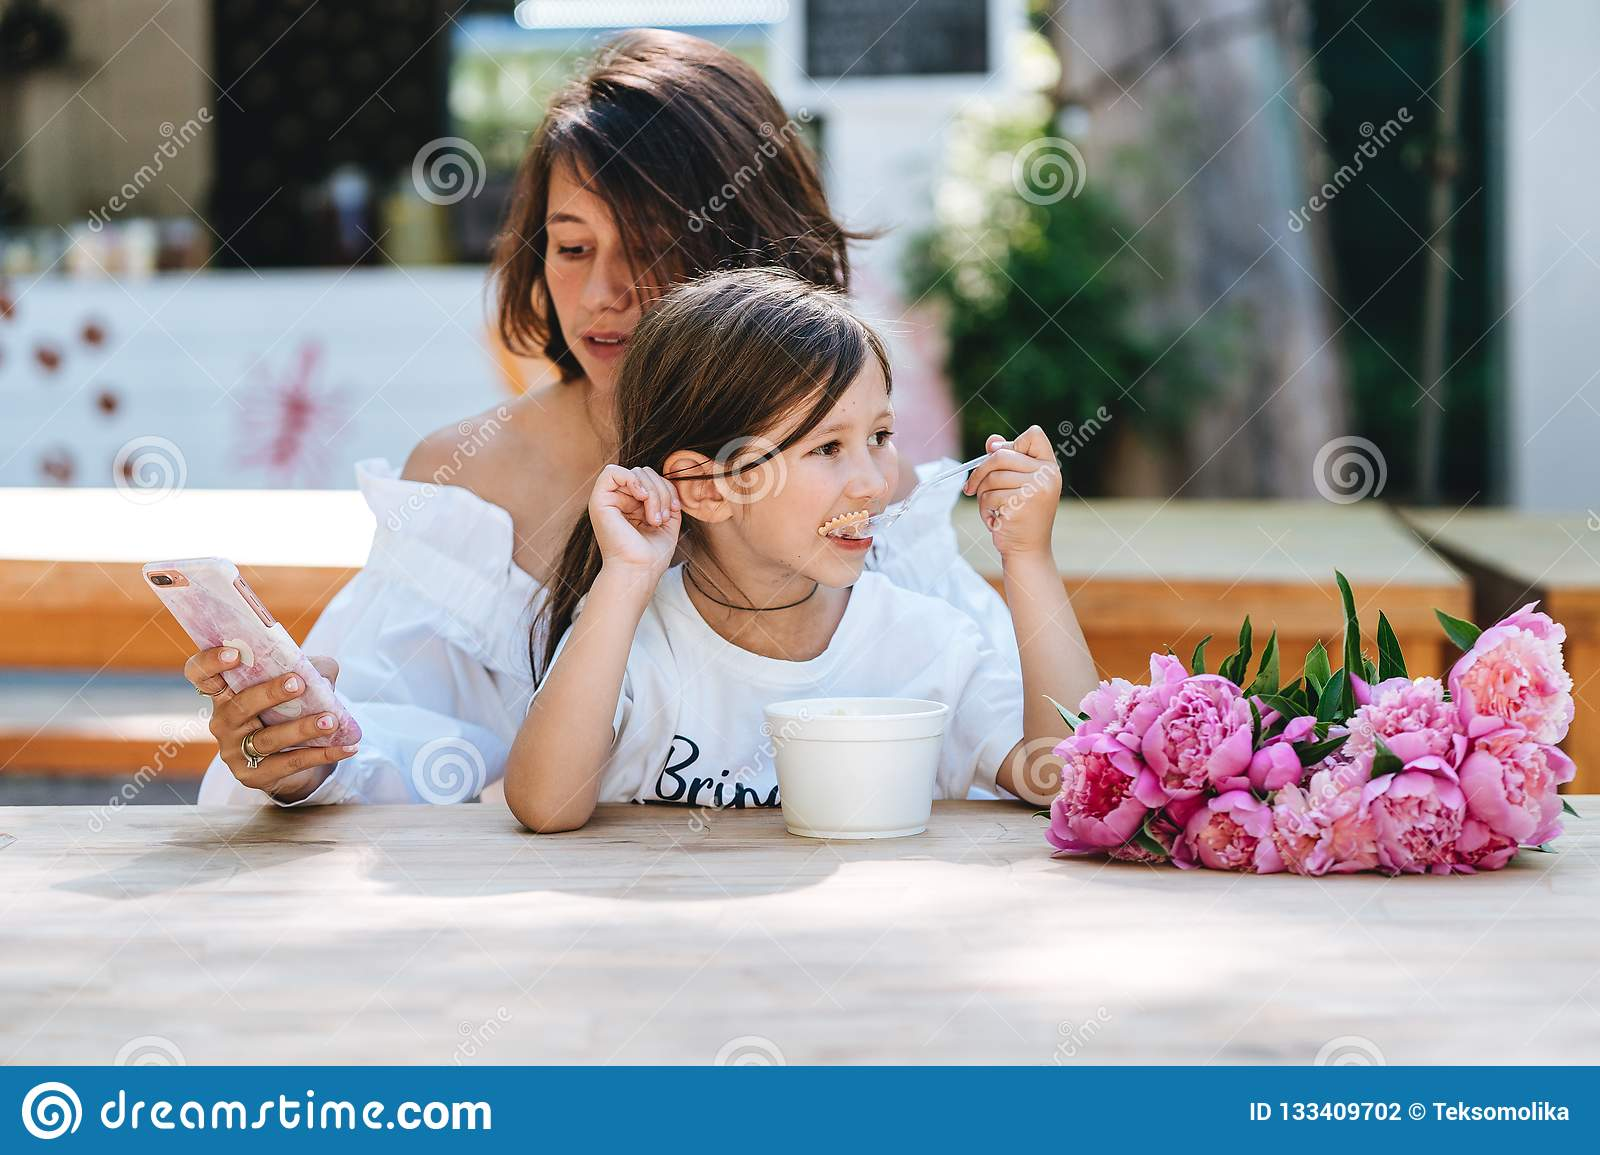 Remarkable, this young little girl mother daughter caption how paraphrase?